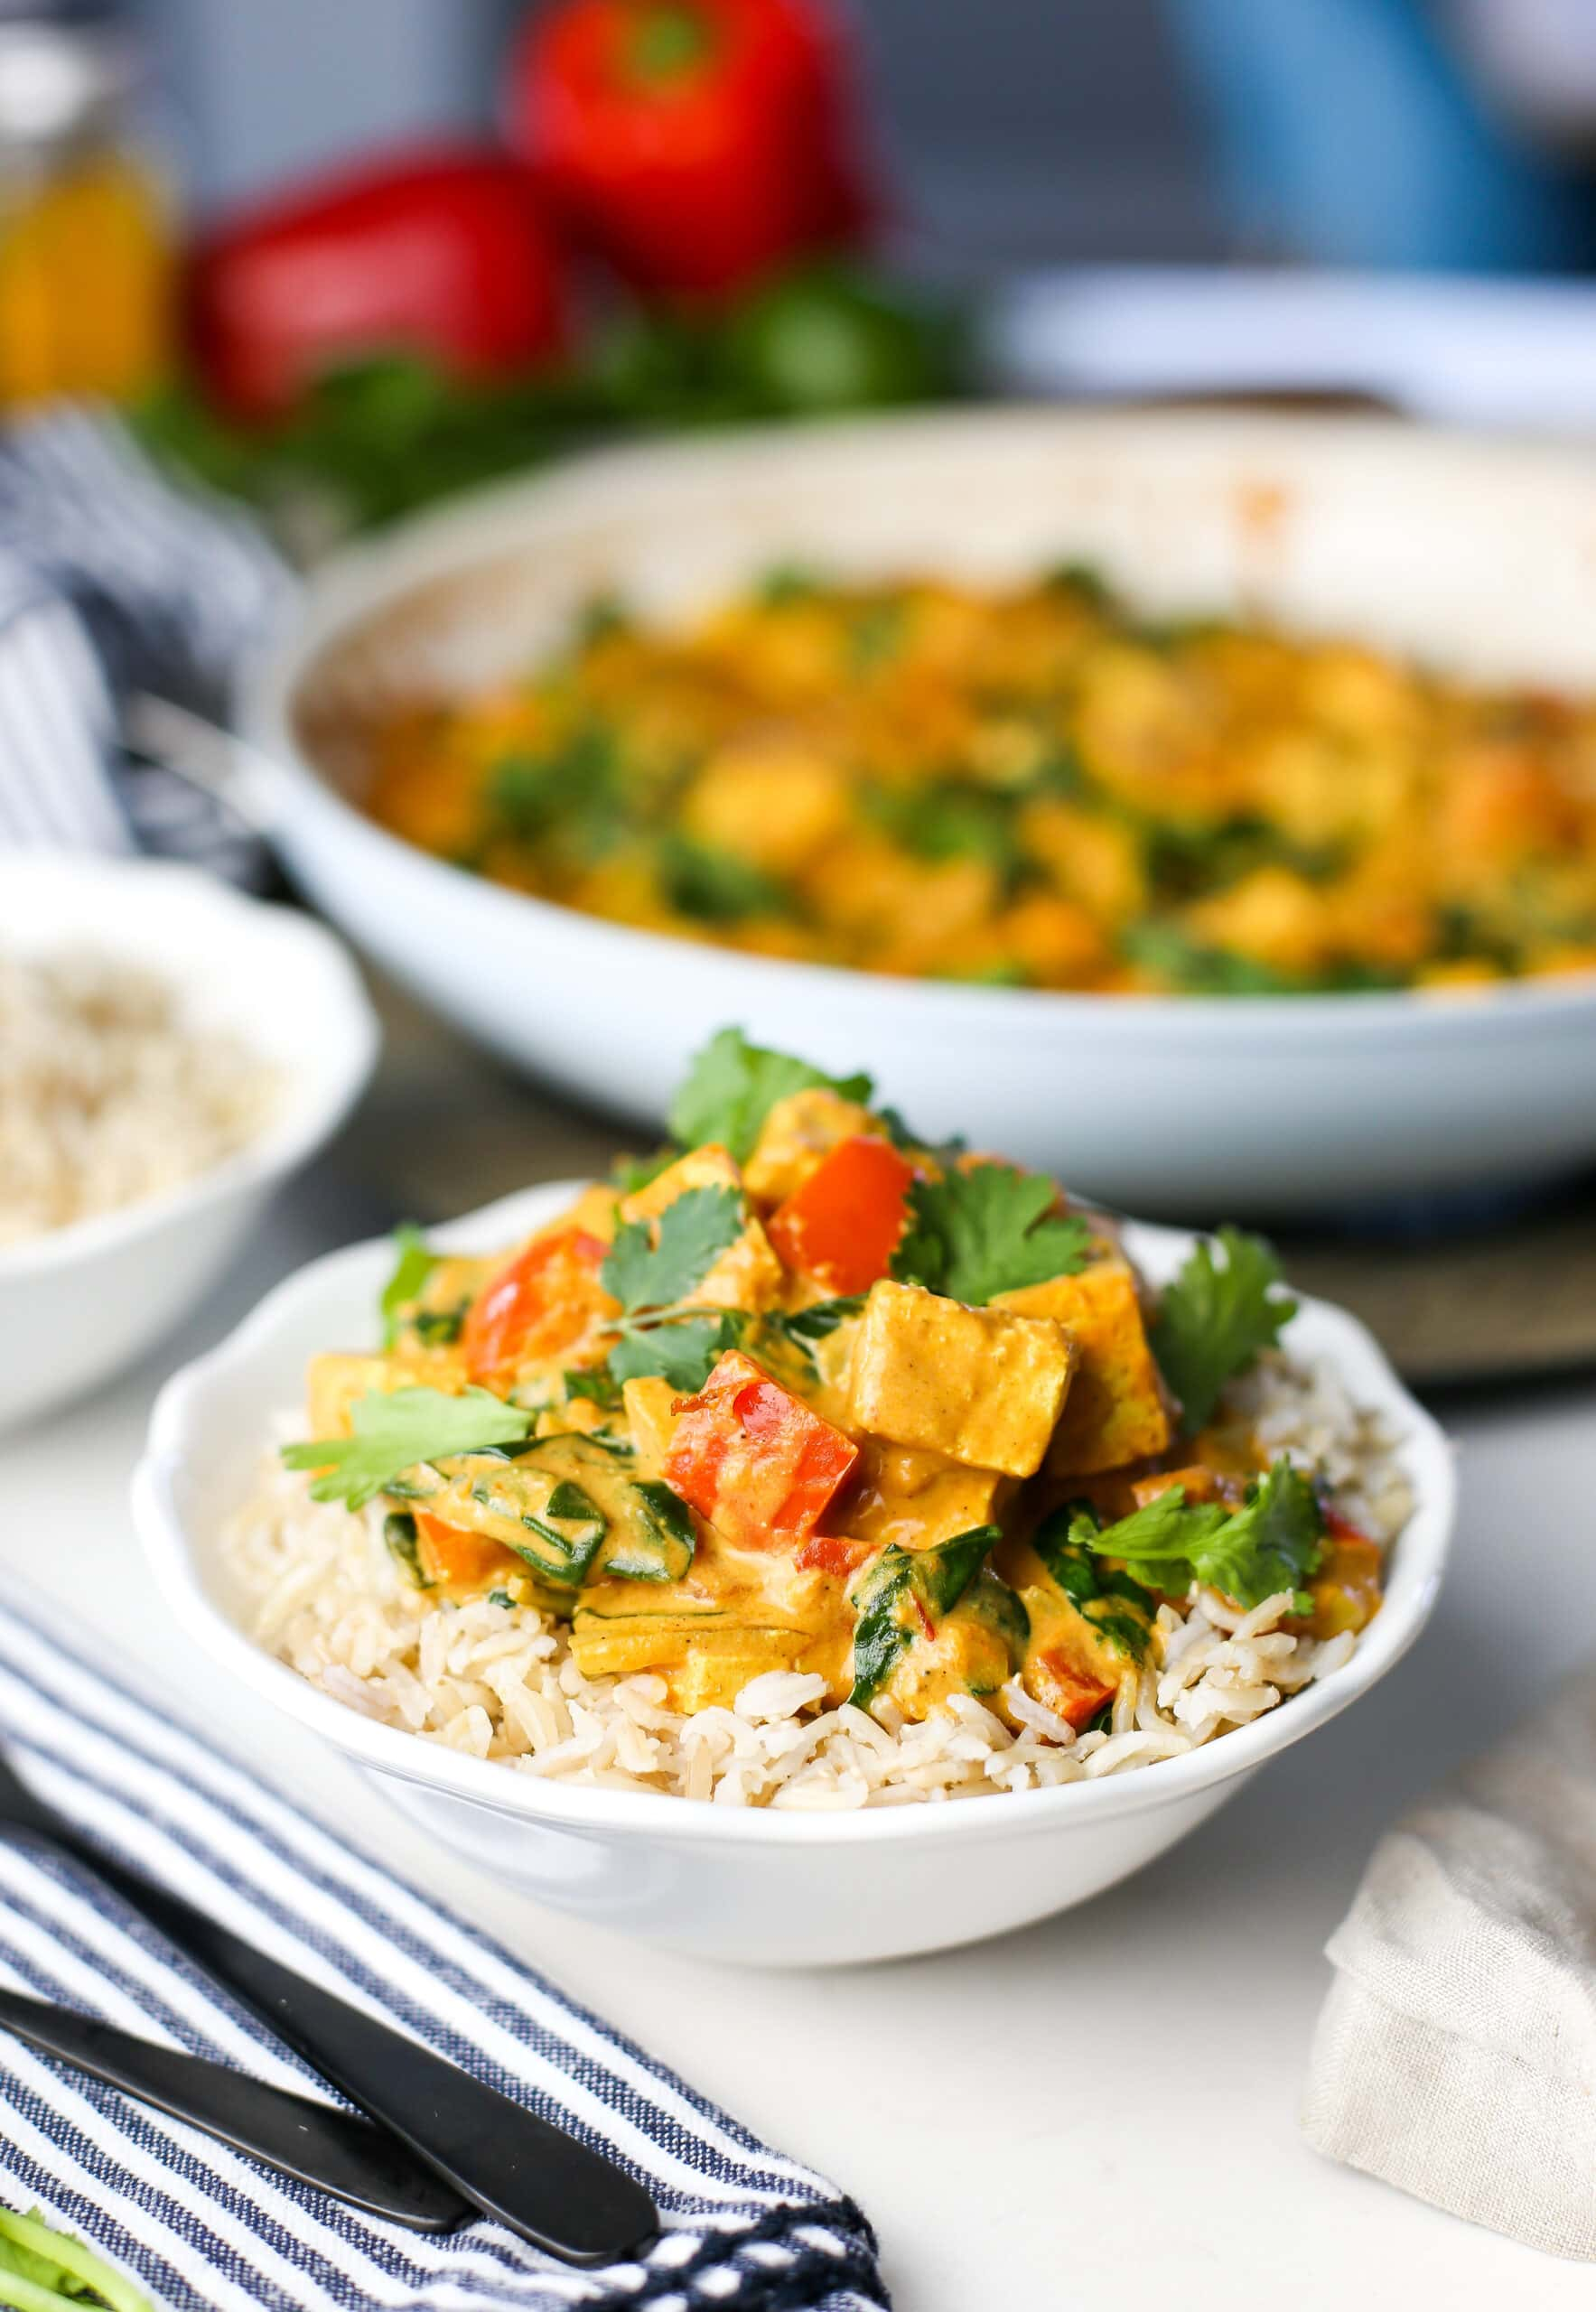 Creamy tofu coconut curry with brown rice in a white bowl.